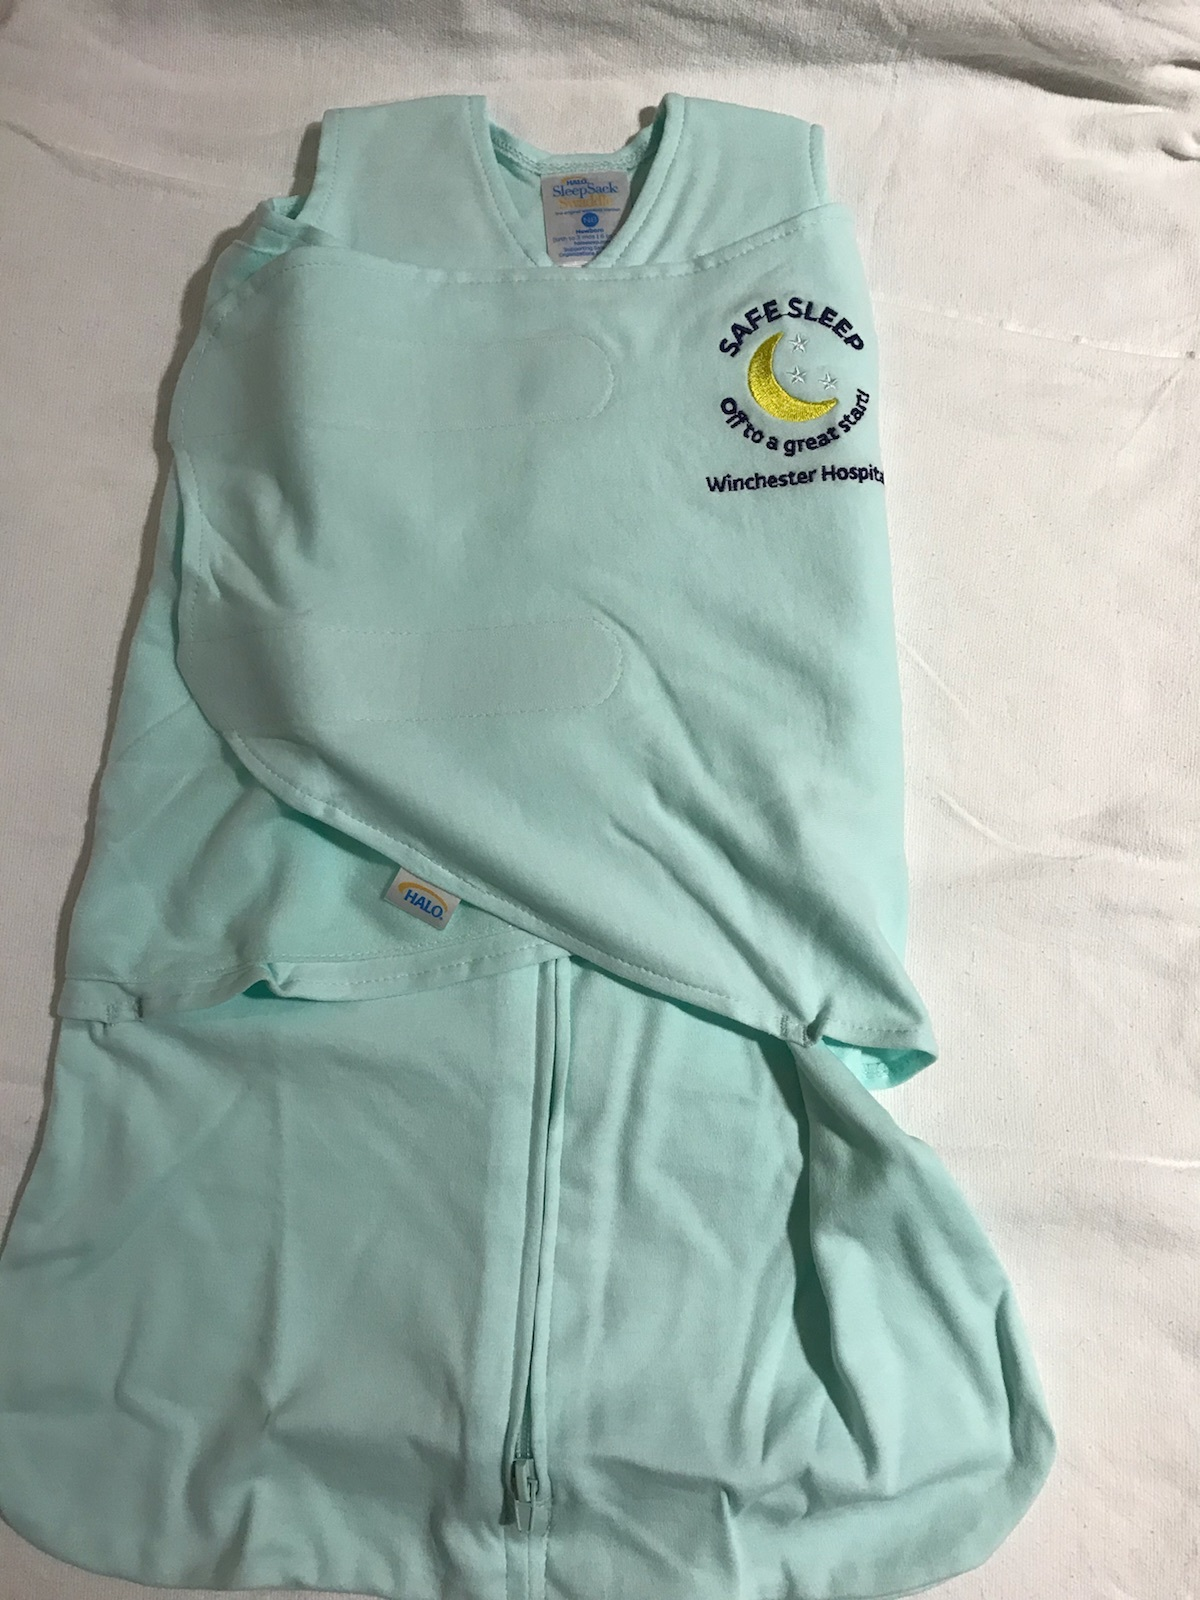 Sleep sack given to all babies at Winchester Hospital.